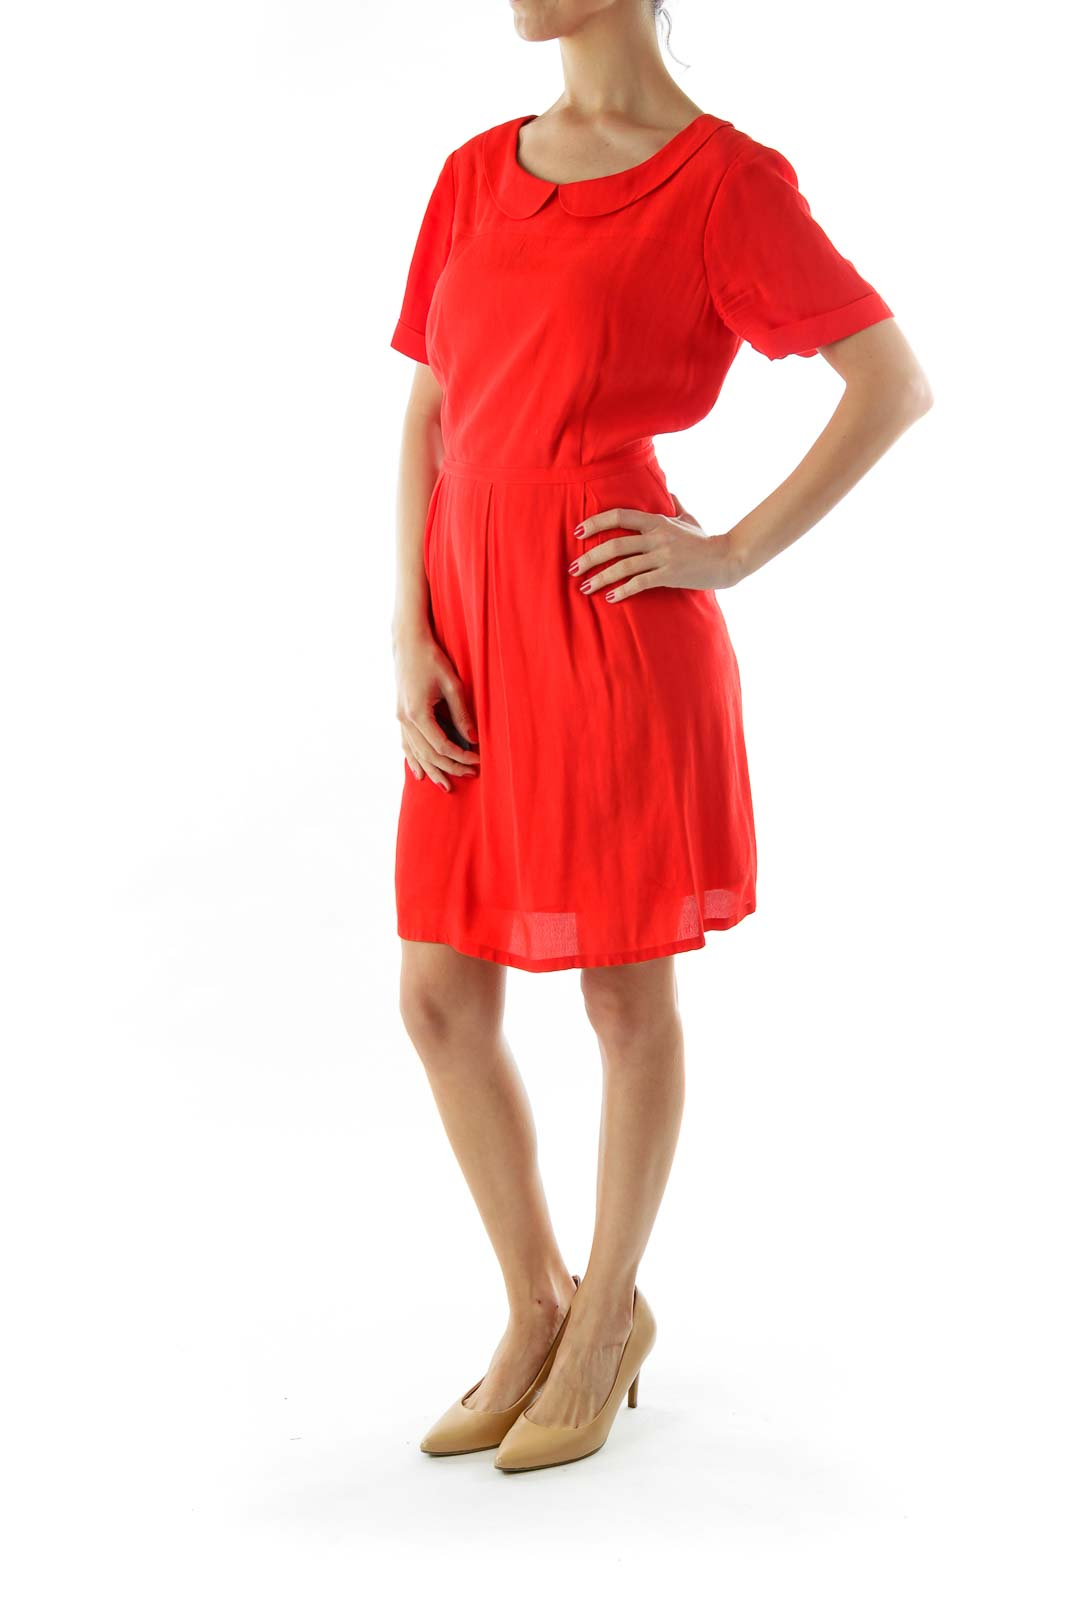 Red Short Sleeve Collared Work Dress